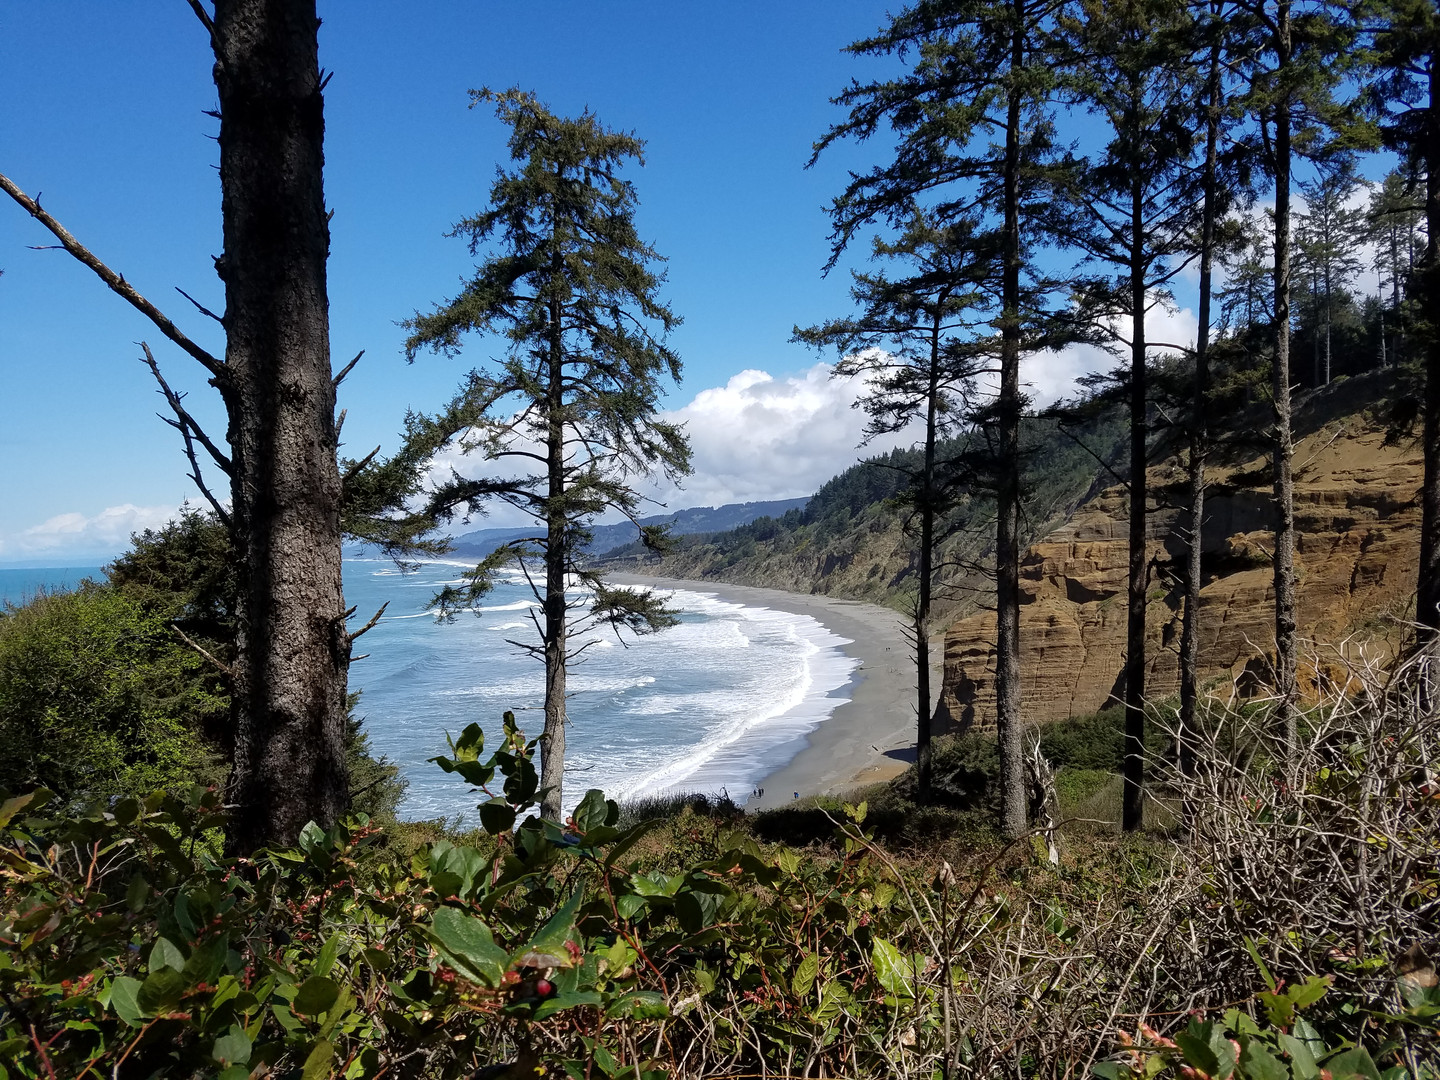 Agate Beach at Patrick's Point